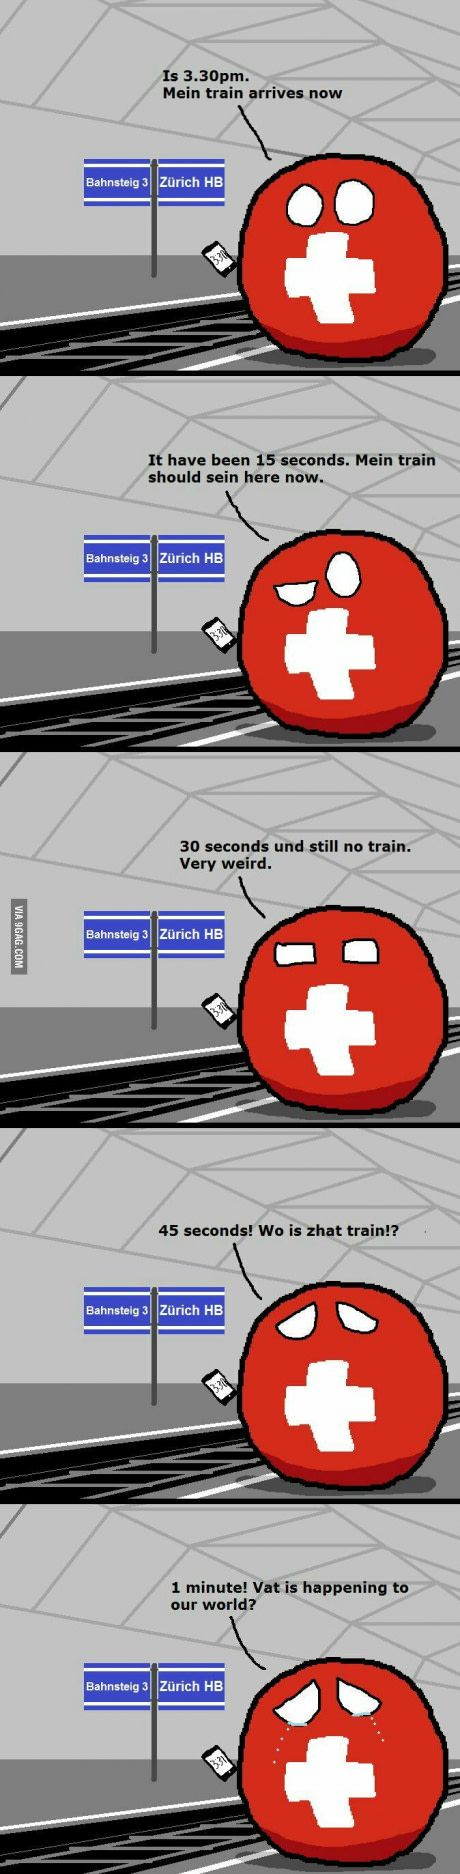 I'm from swizerland and can confirm that this is true.>> I am from Germany and wish that was true for our trains as well